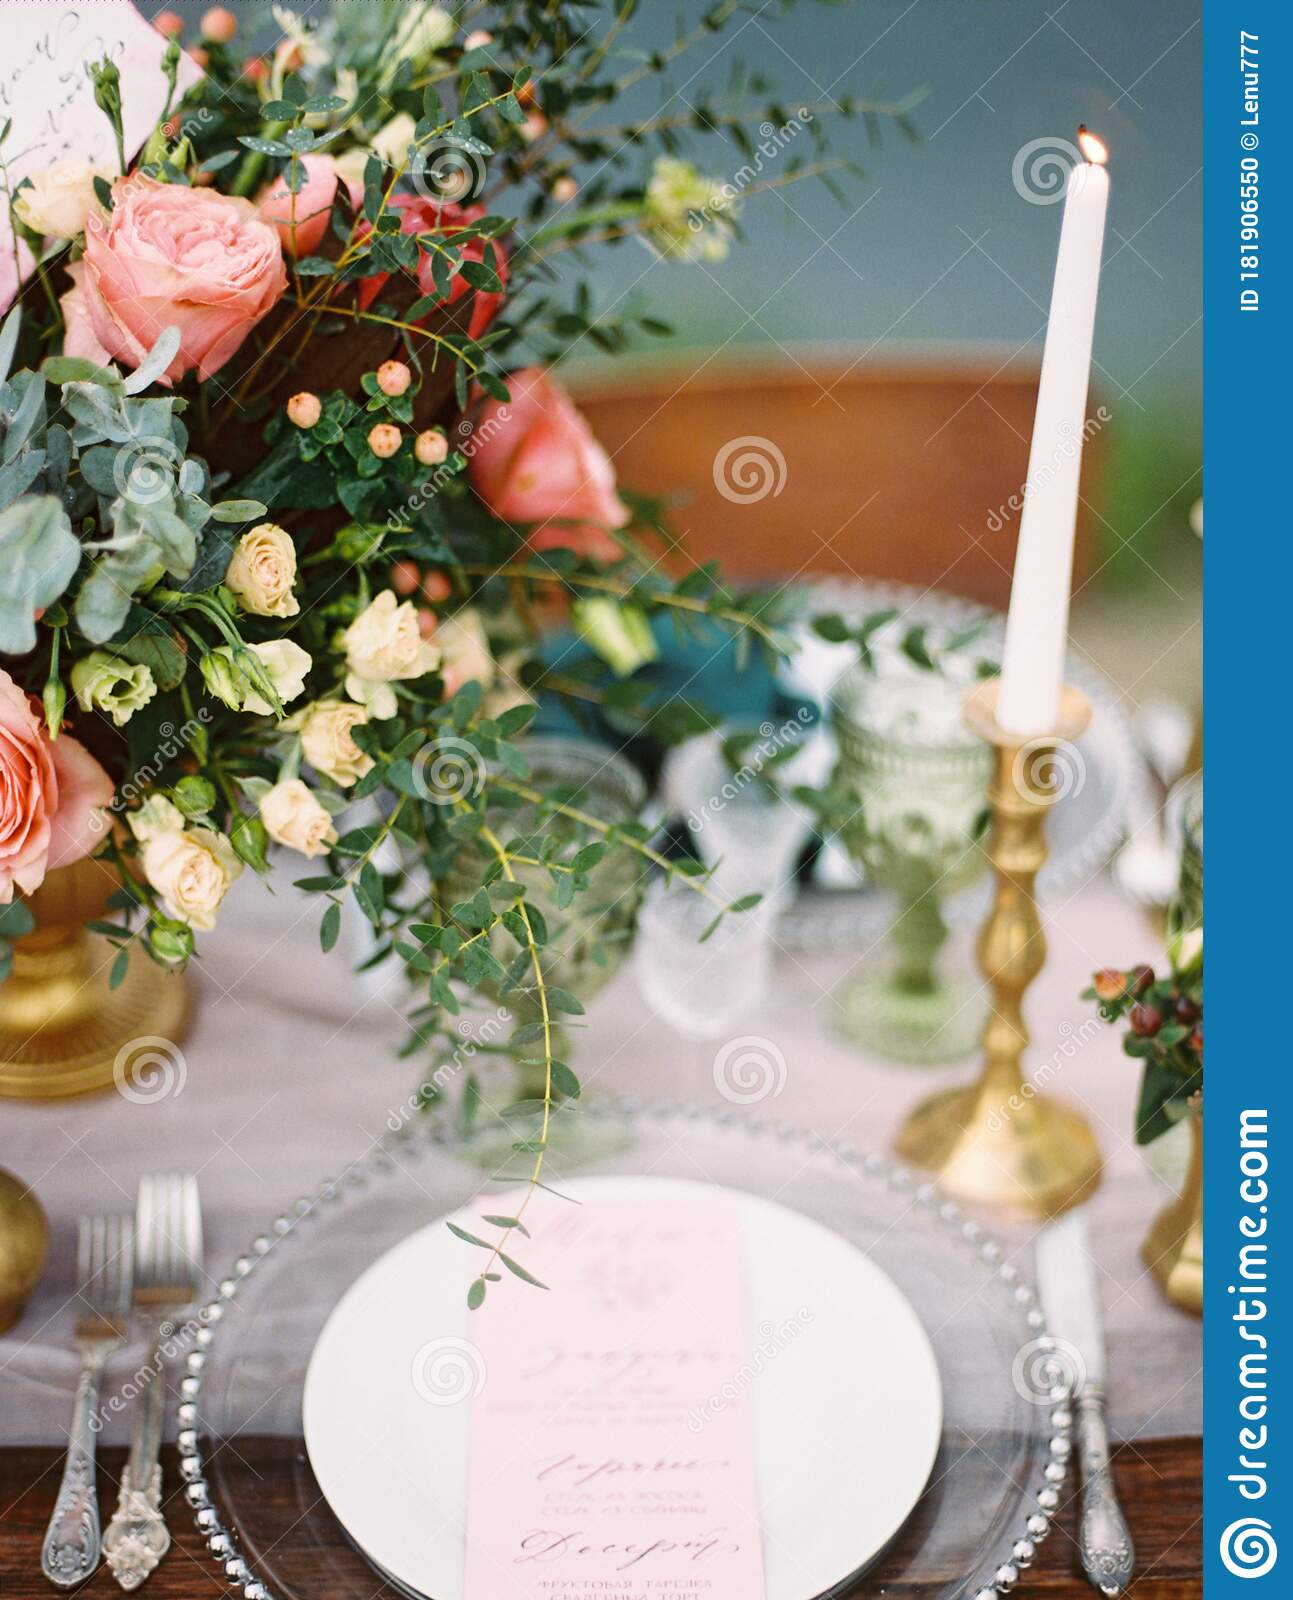 Dining Table Decorations And Festive Table Setting Outdoor Closeup Romantic Vacation On The Beach Stock Photo Image Of Beautiful Calligraphy 181906550